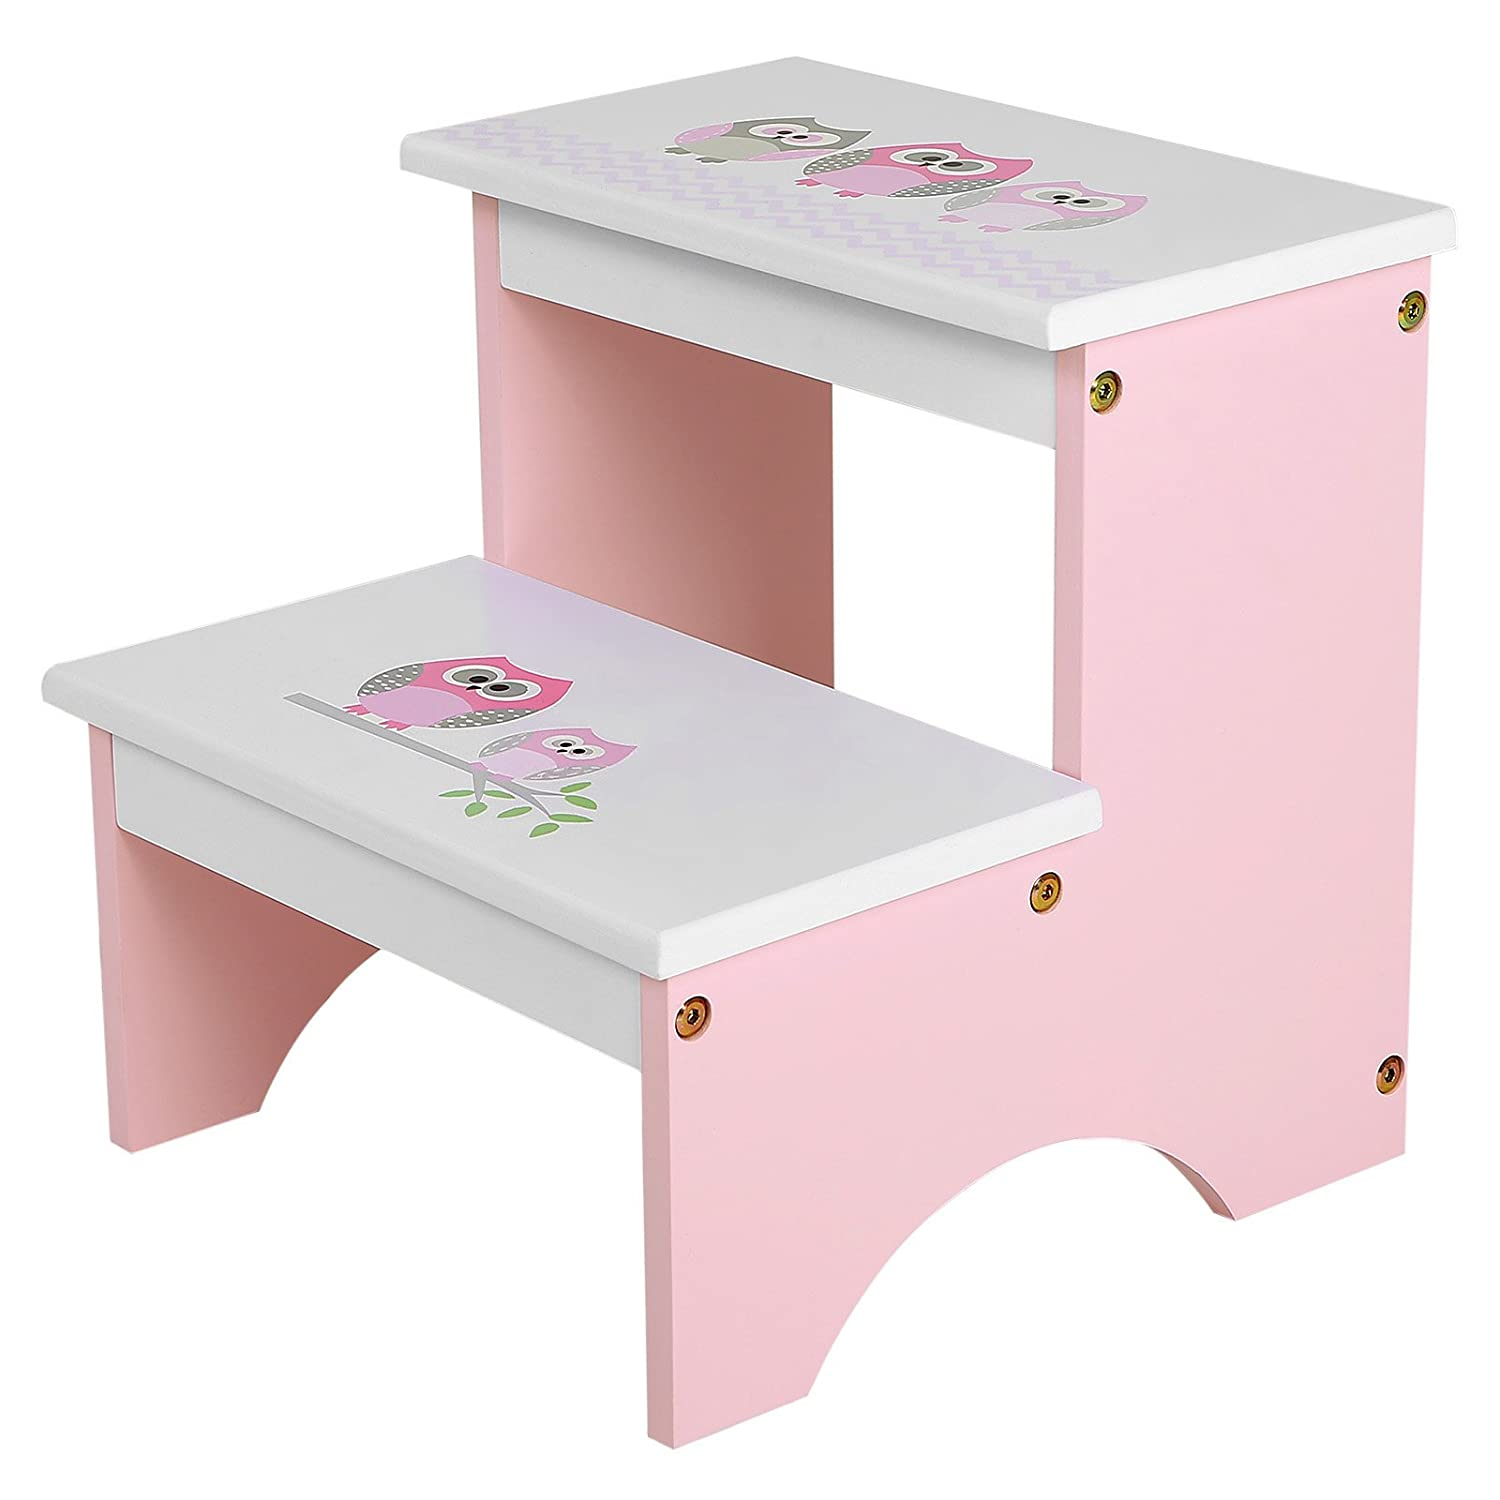 SONGMICS Children Step Stool, Wood Bed Steps for Kids, Owl Theme in Bathroom Closet Kitchen Toilet Pink White ULKF02PK